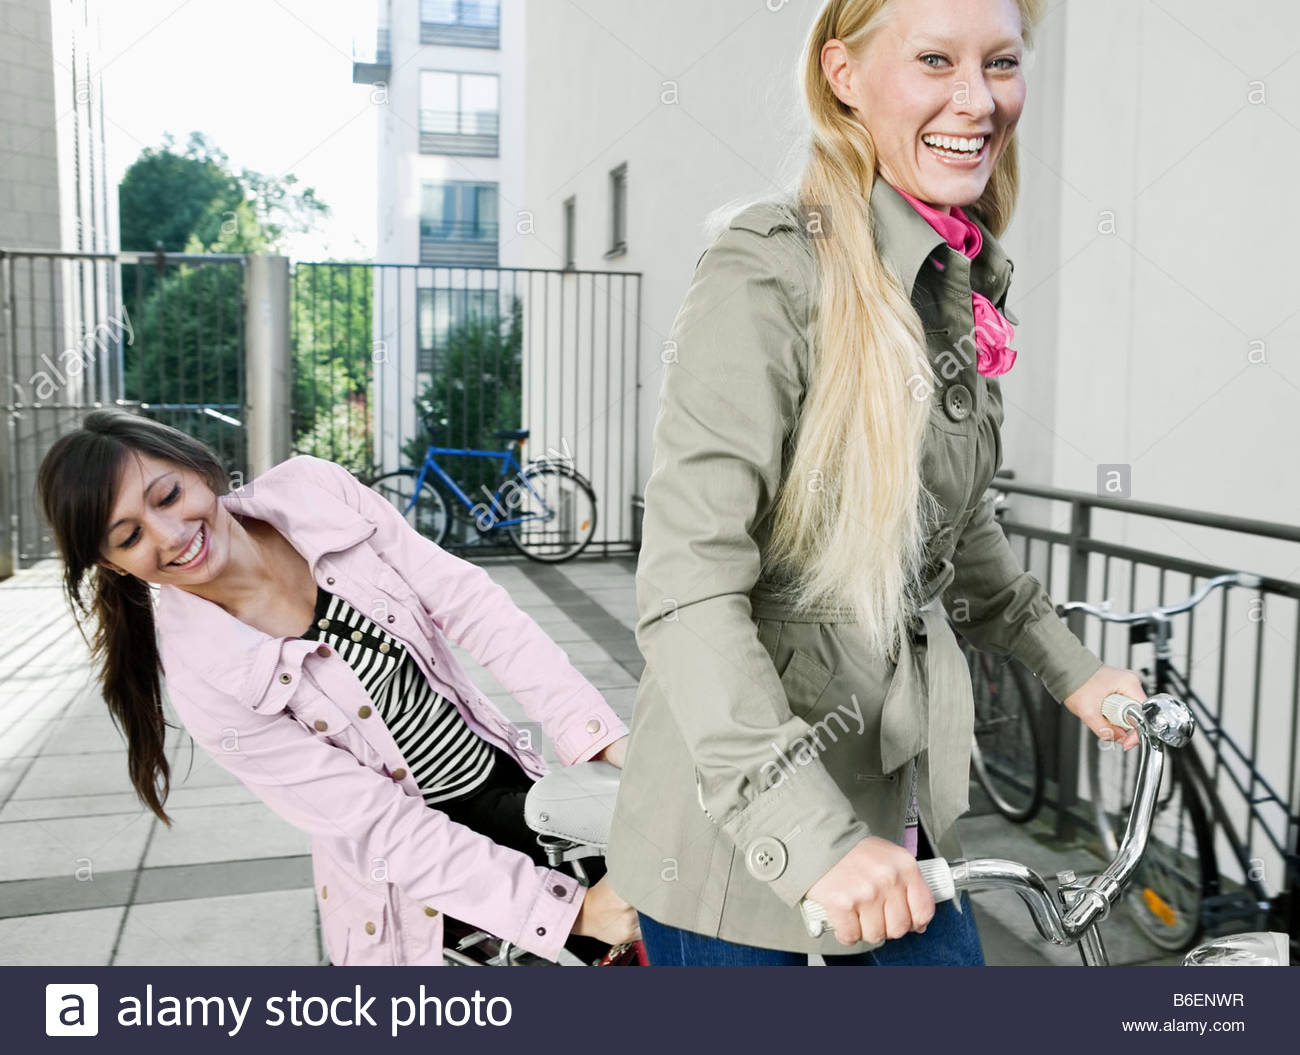 One girl giving another girl a ride - Stock Image